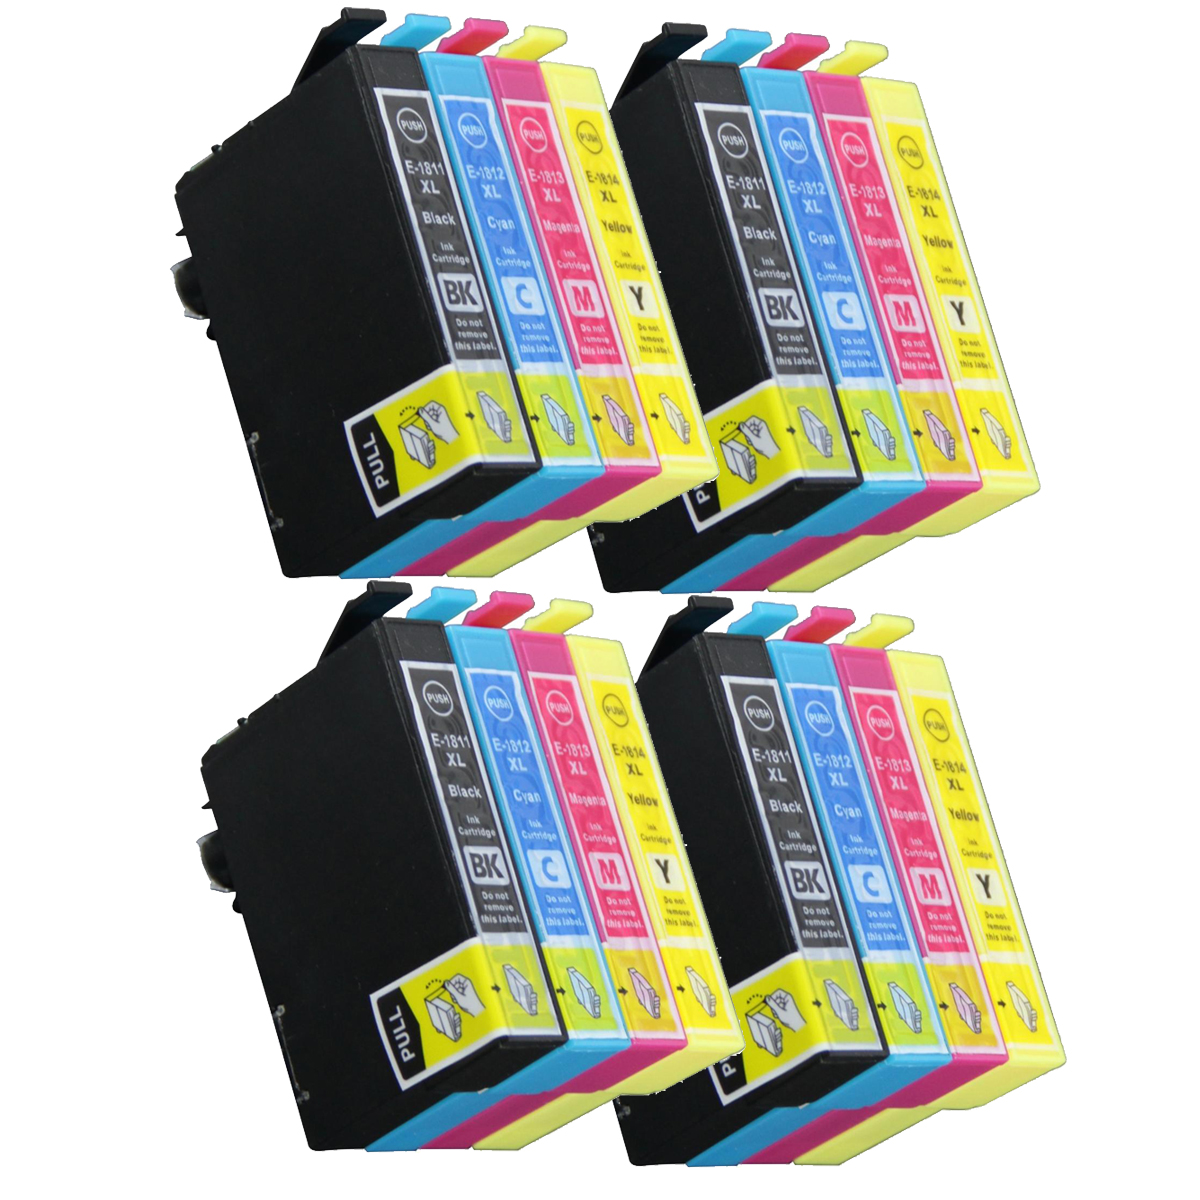 16 Ink Cartriges T18XL Model T 18XL T1811 T1812 T1813 T1814 Compatible With Epson Printers XP102 XP202 XP205 XP30 XP212